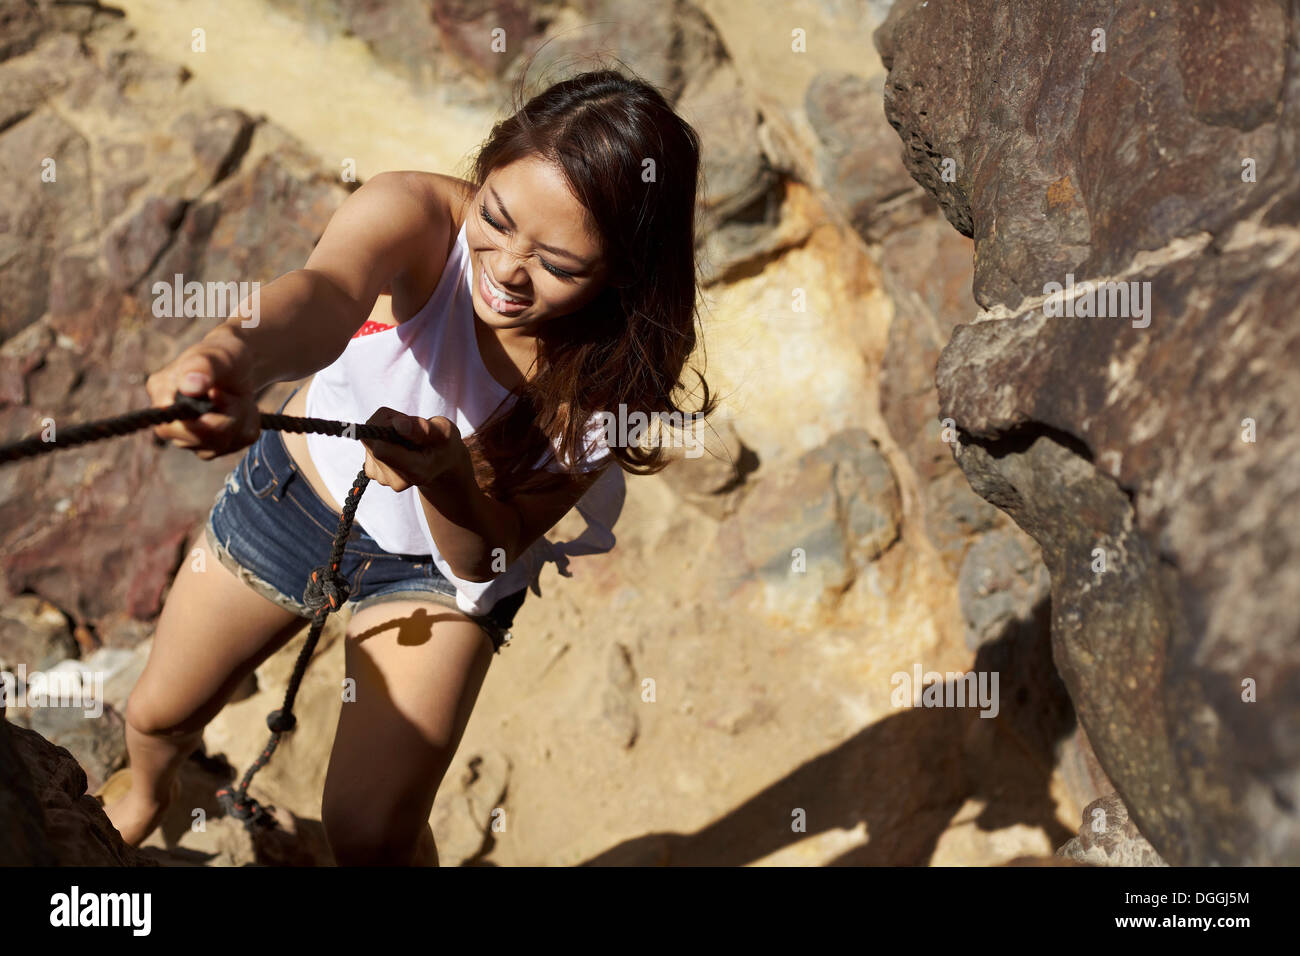 Jeune femme escalade rochers, Palos Verdes, California, USA Photo Stock